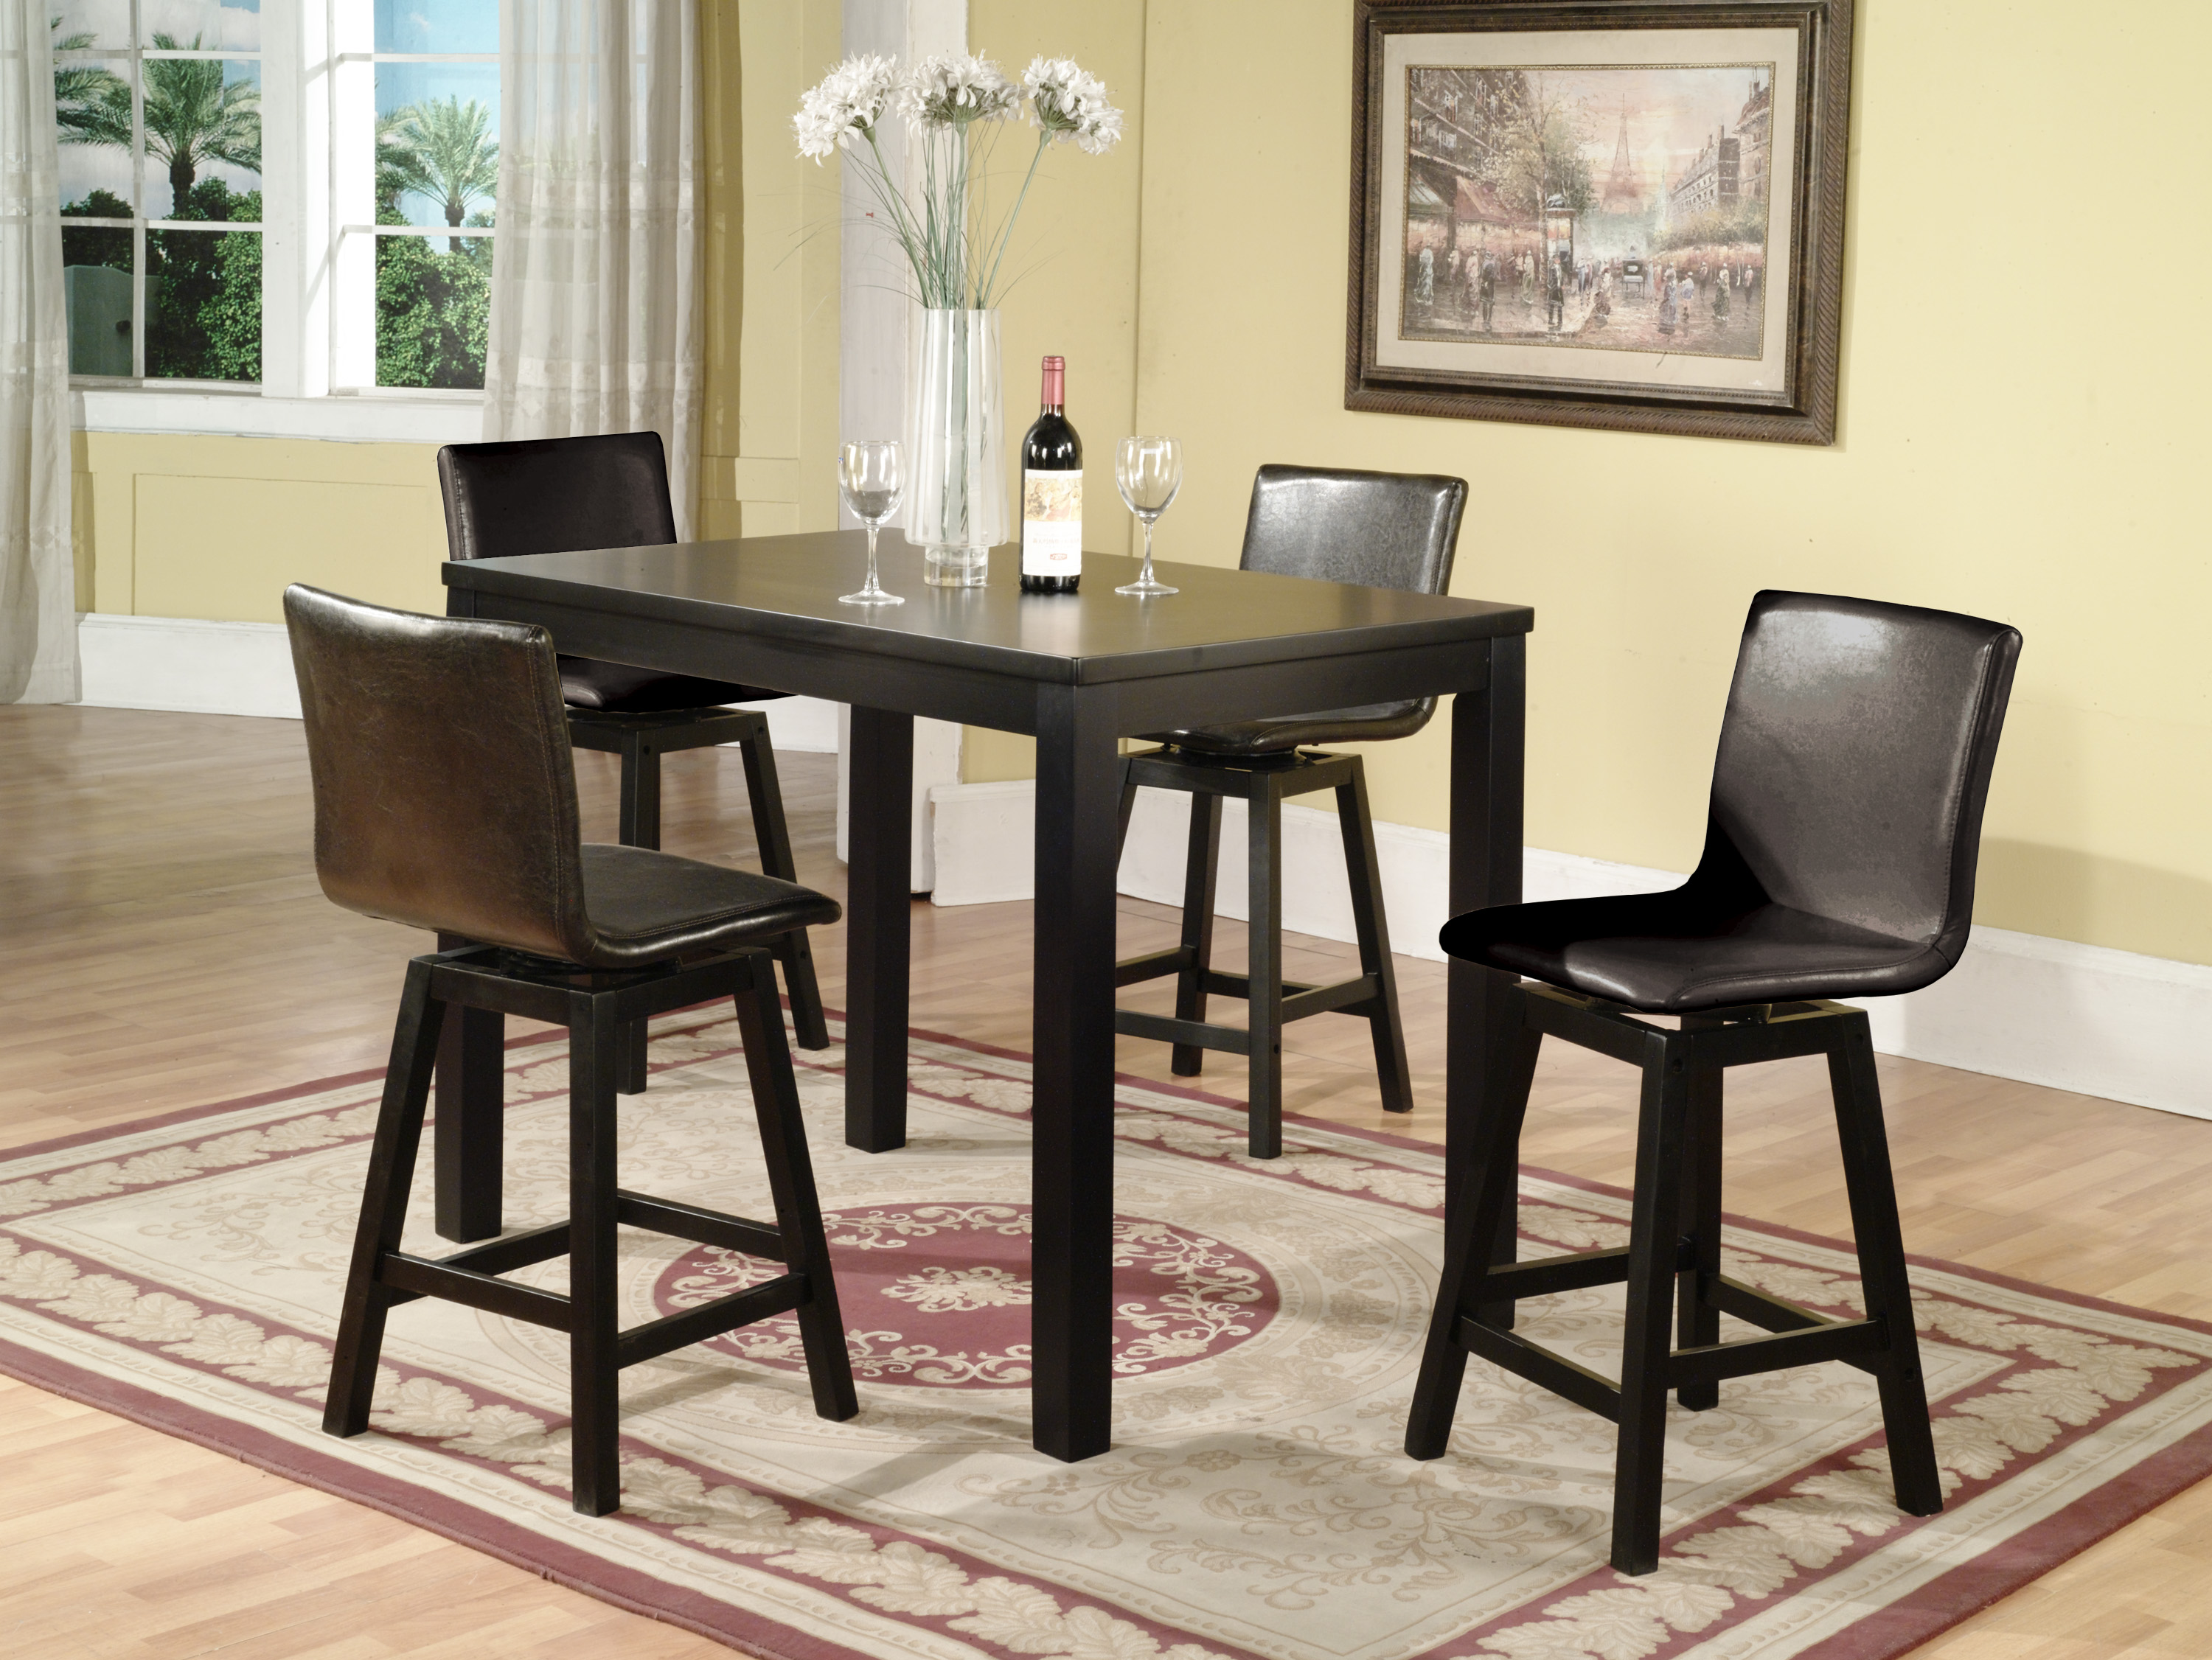 Counter height dinette sets homesfeed for Tall dining table